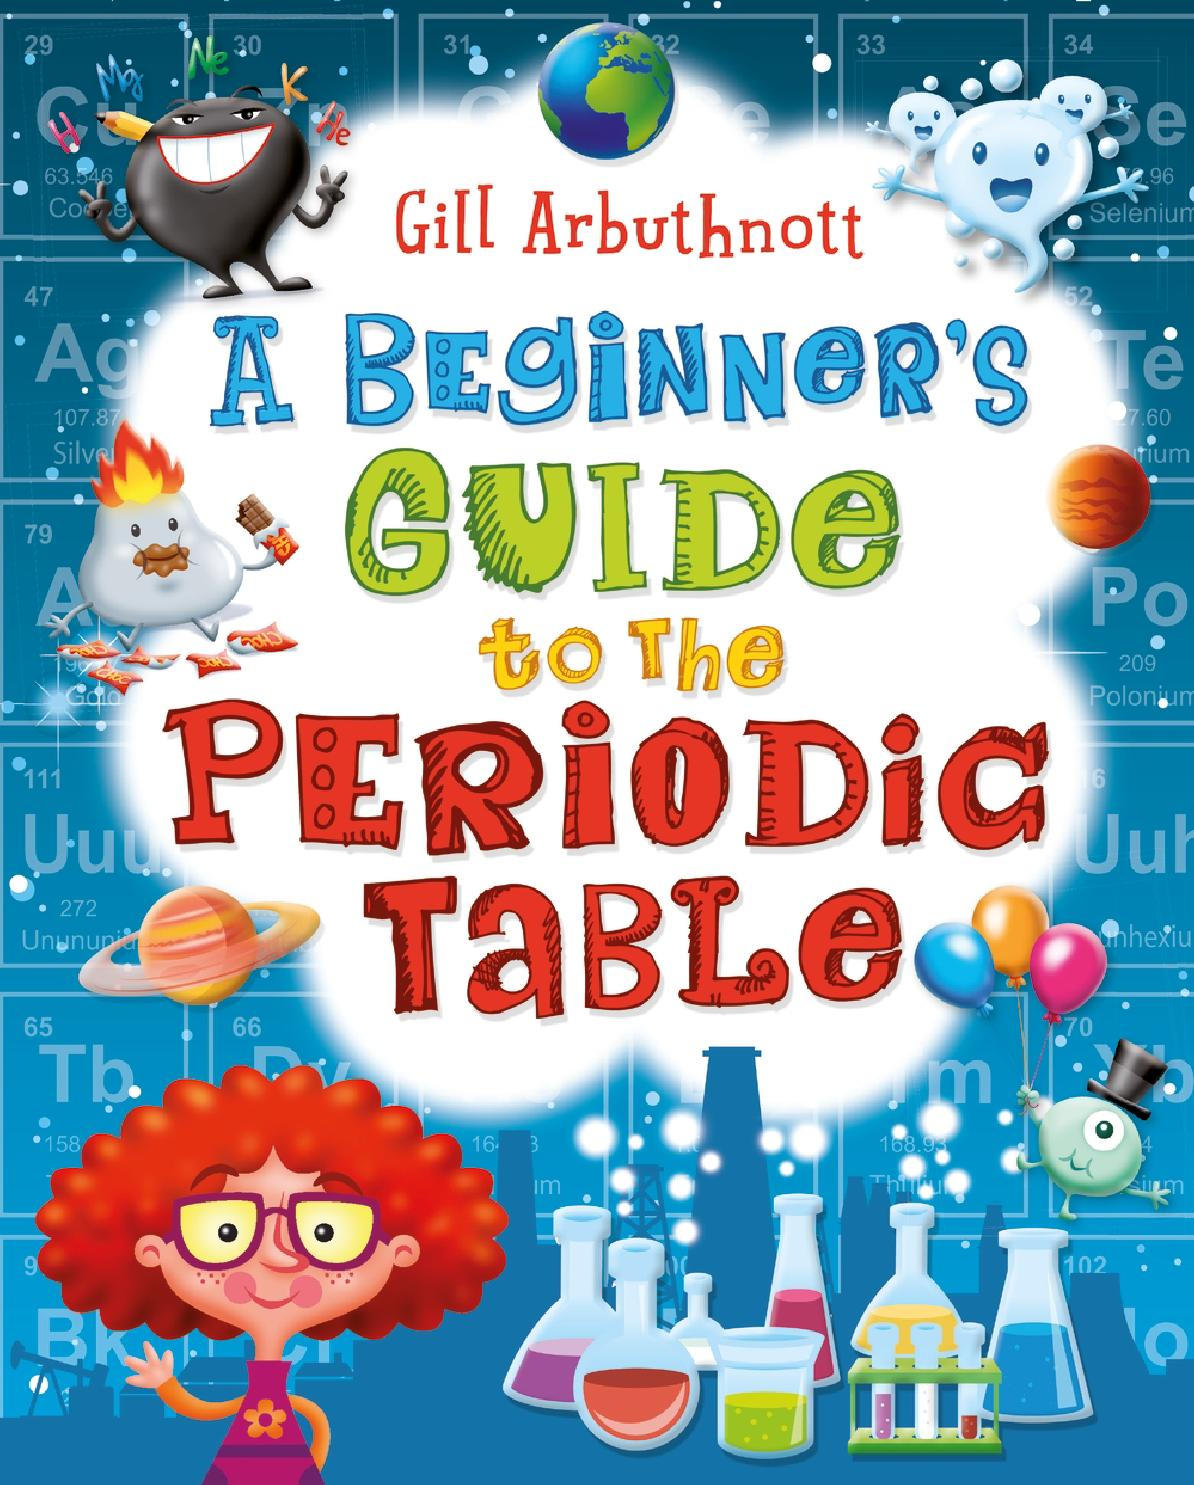 A beginners guide to the periodic table by bloomsbury publishing a beginners guide to the periodic table by bloomsbury publishing issuu gamestrikefo Image collections